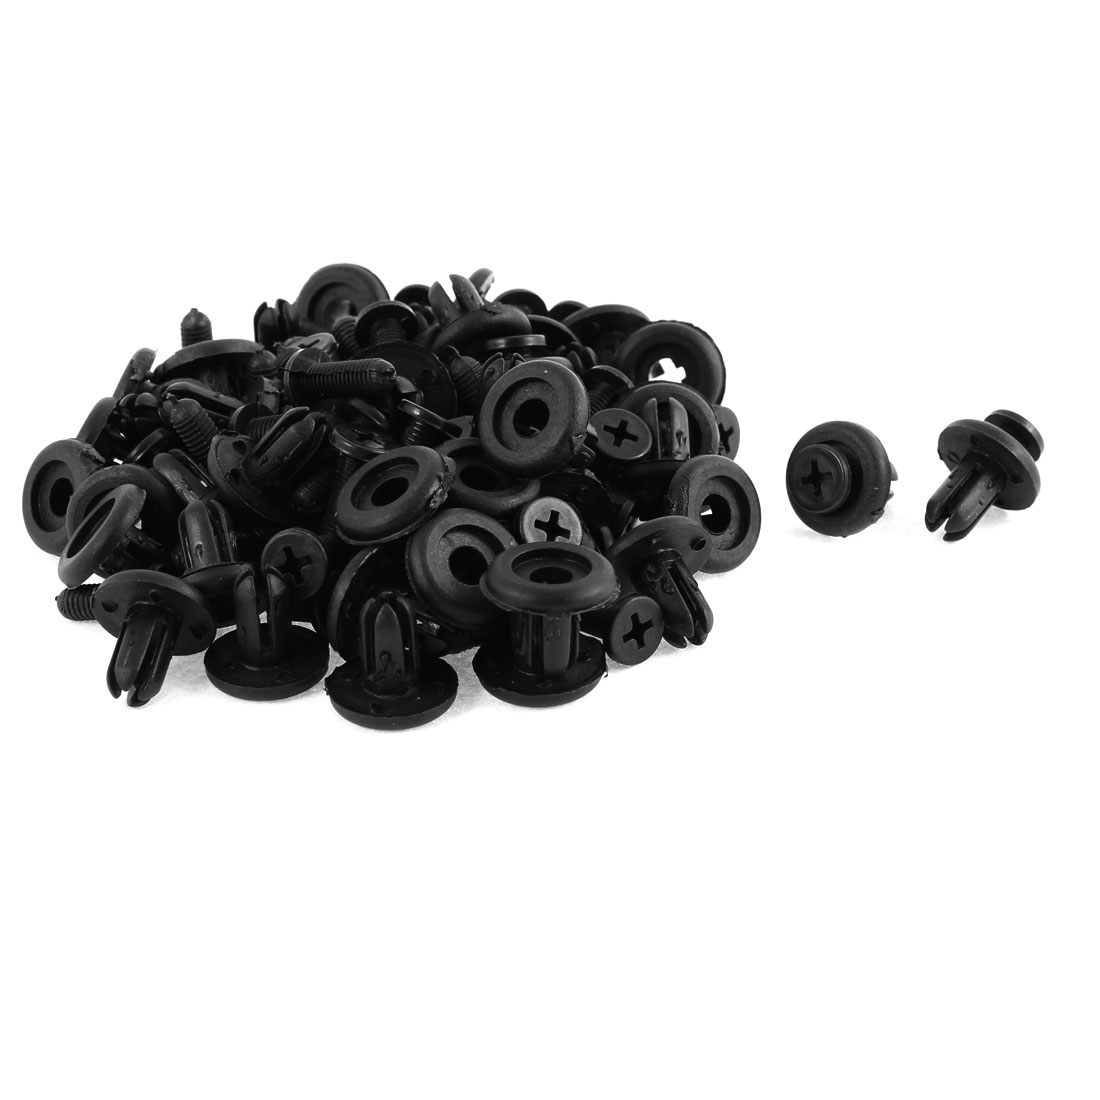 50 Pcs Black Plastic Screw Rivet Push-Type Trim Panel Retainer Clips